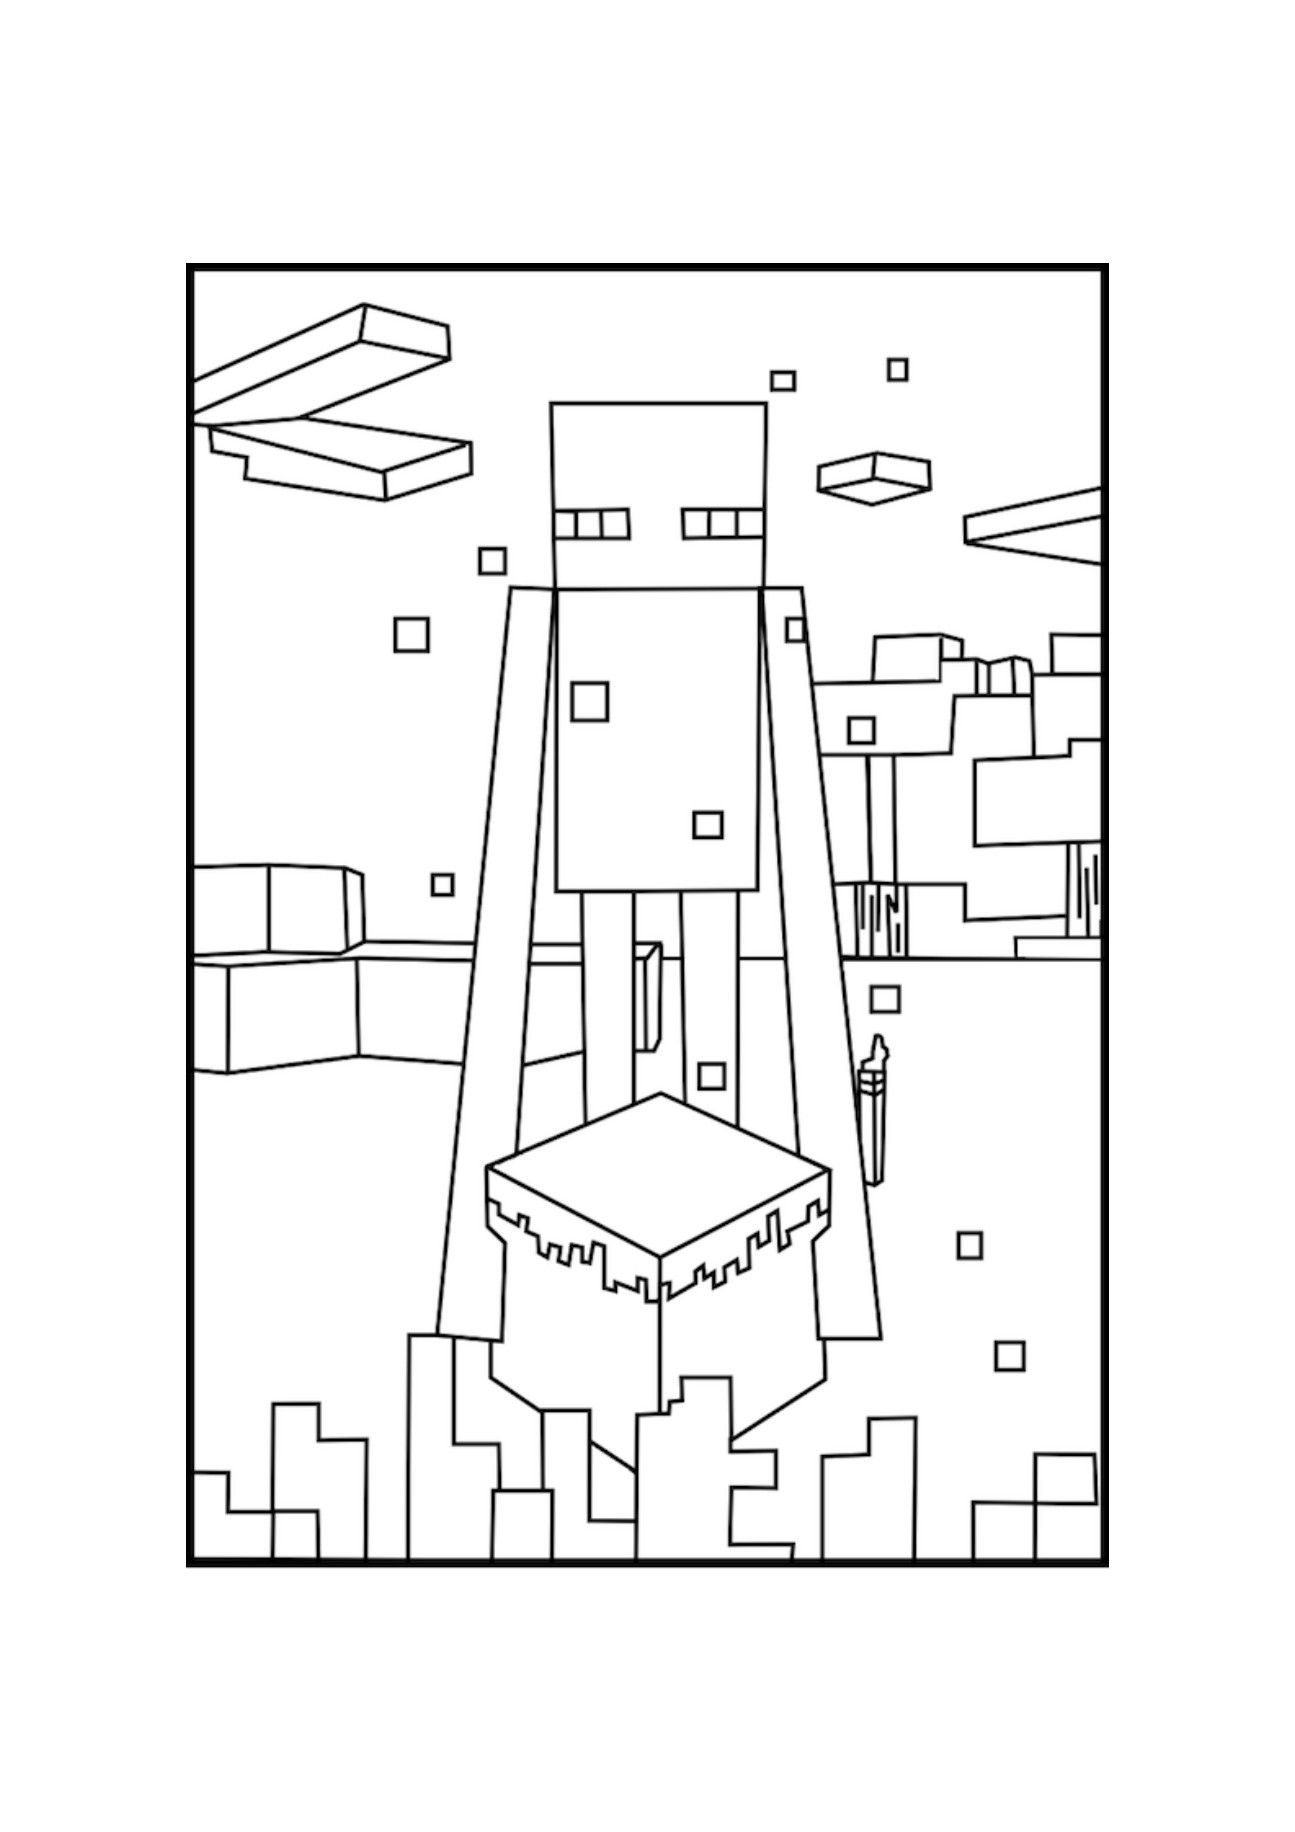 Minecraft Enderman Coloring Page Youngandtae Com Minecraft Coloring Pages Coloring Pages Minecraft